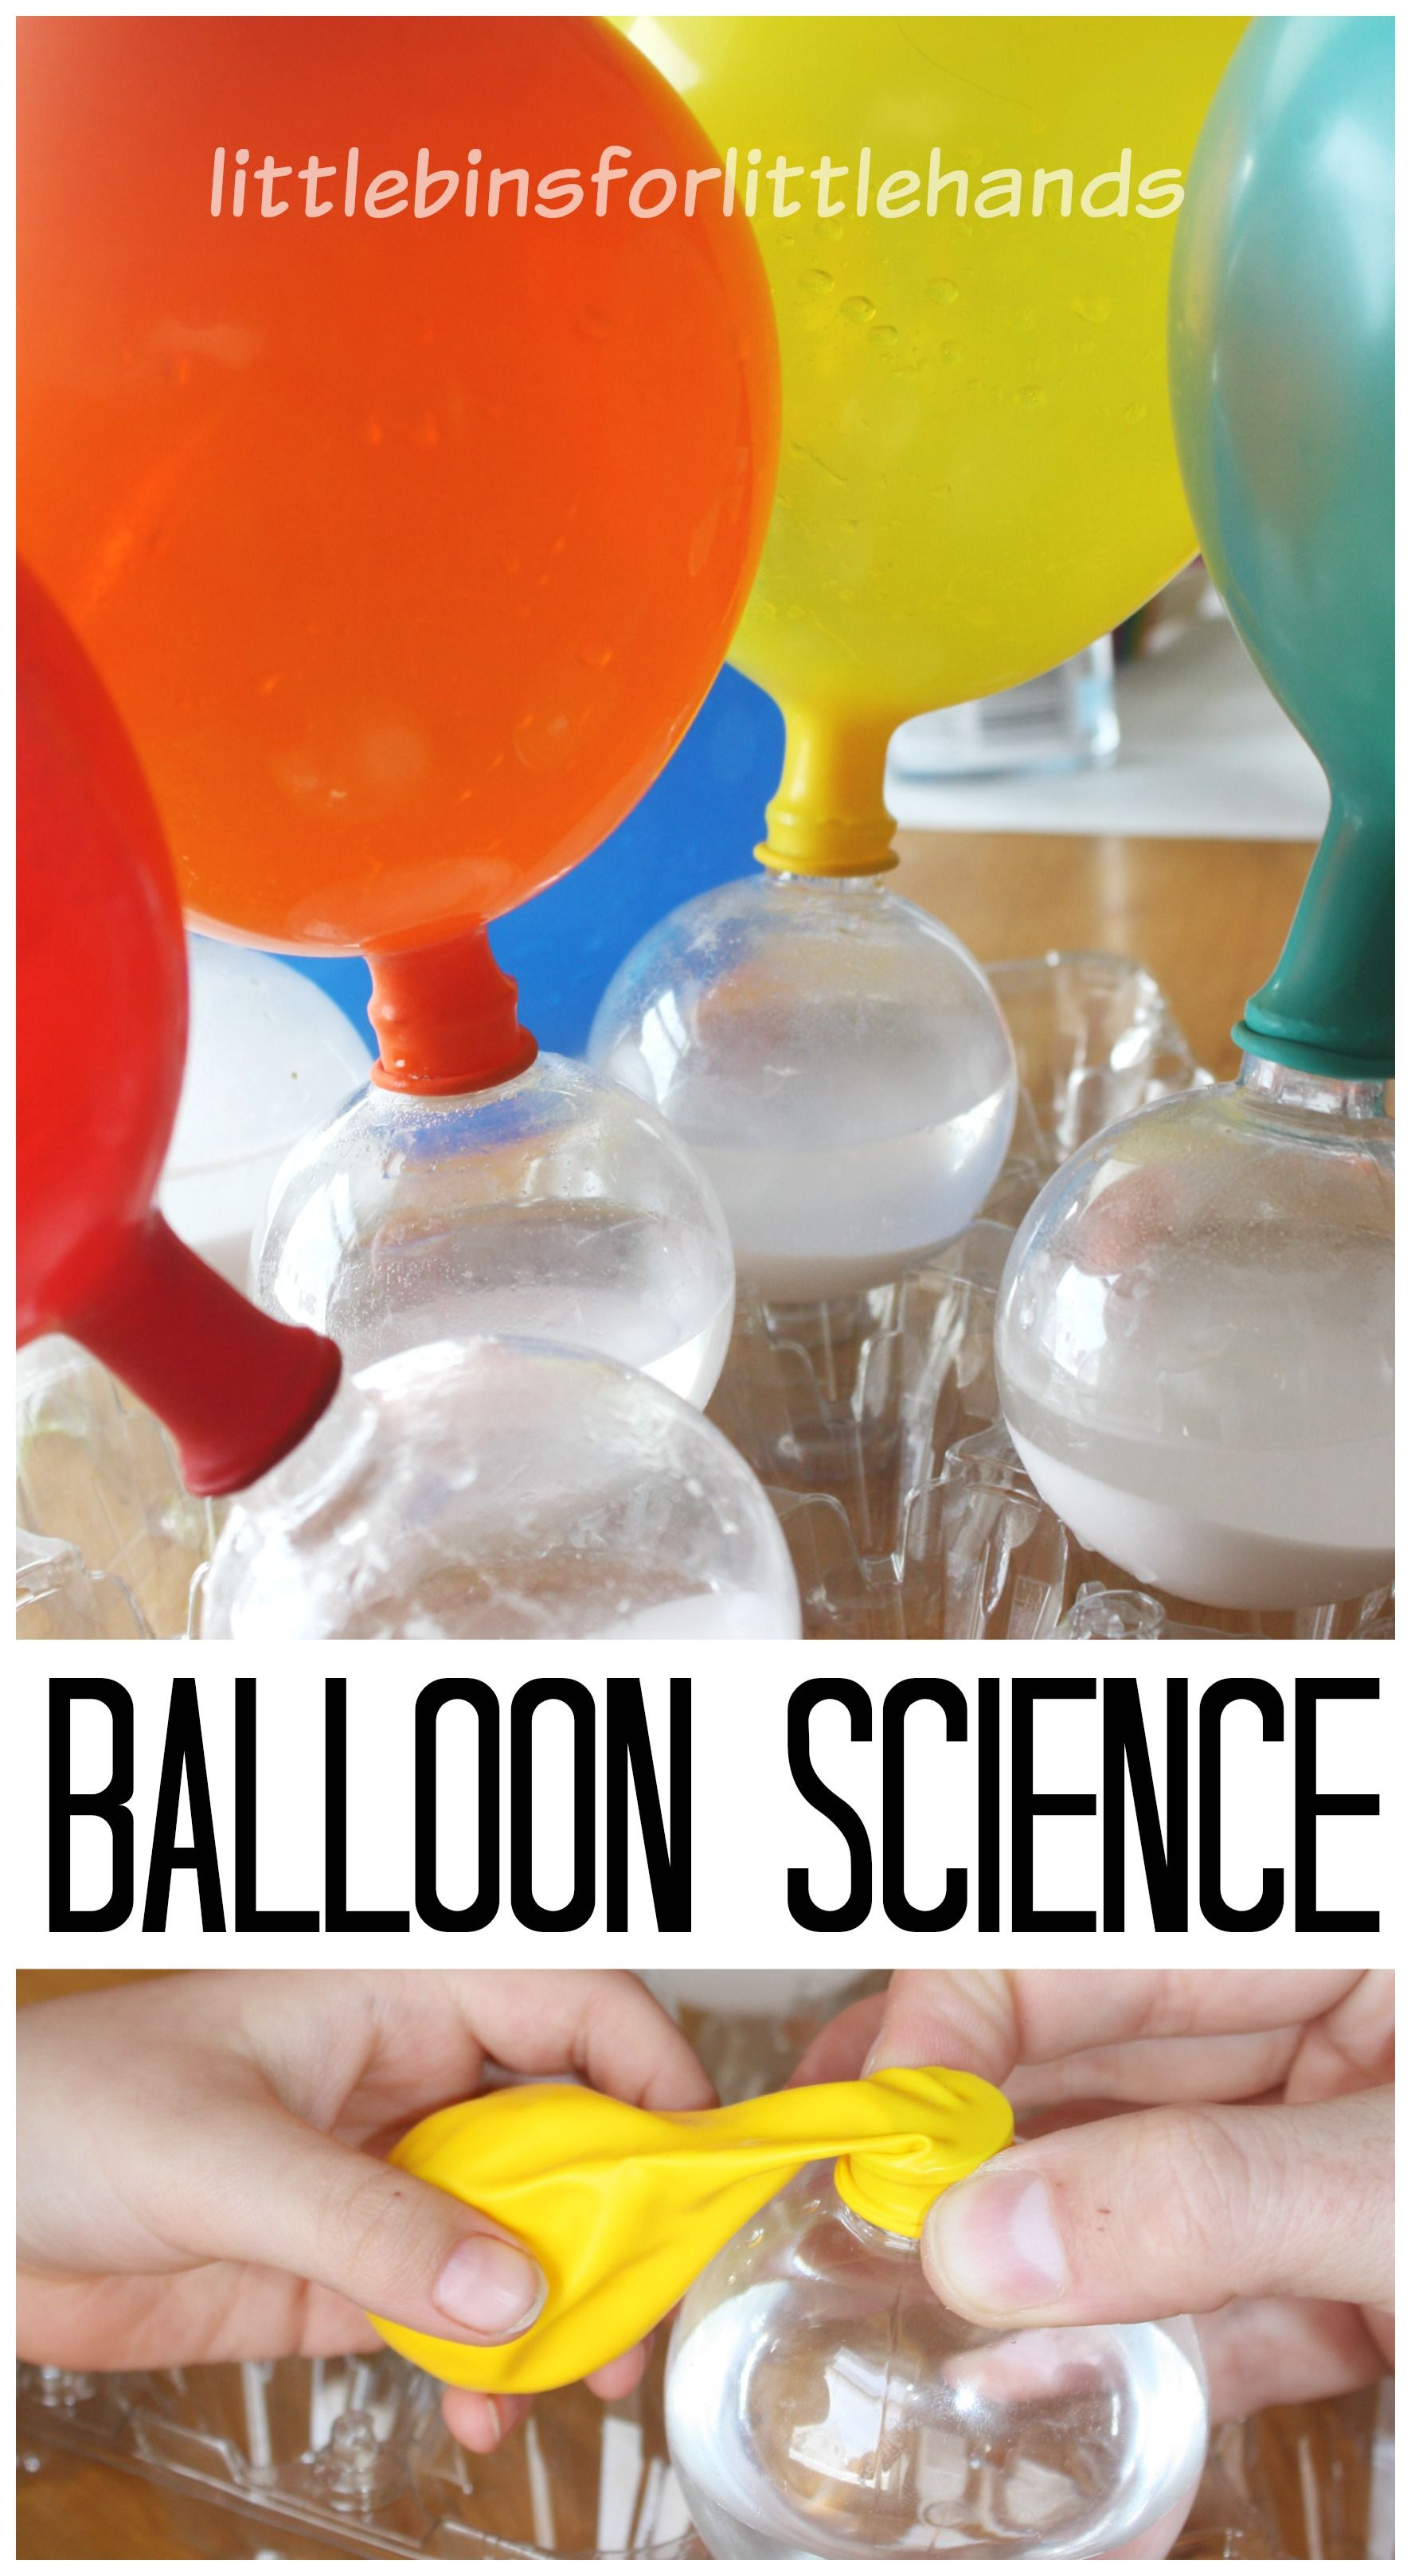 Worksheet Baking Science Experiments 78 best images about science fair on pinterest preschool sodas and pop rocks